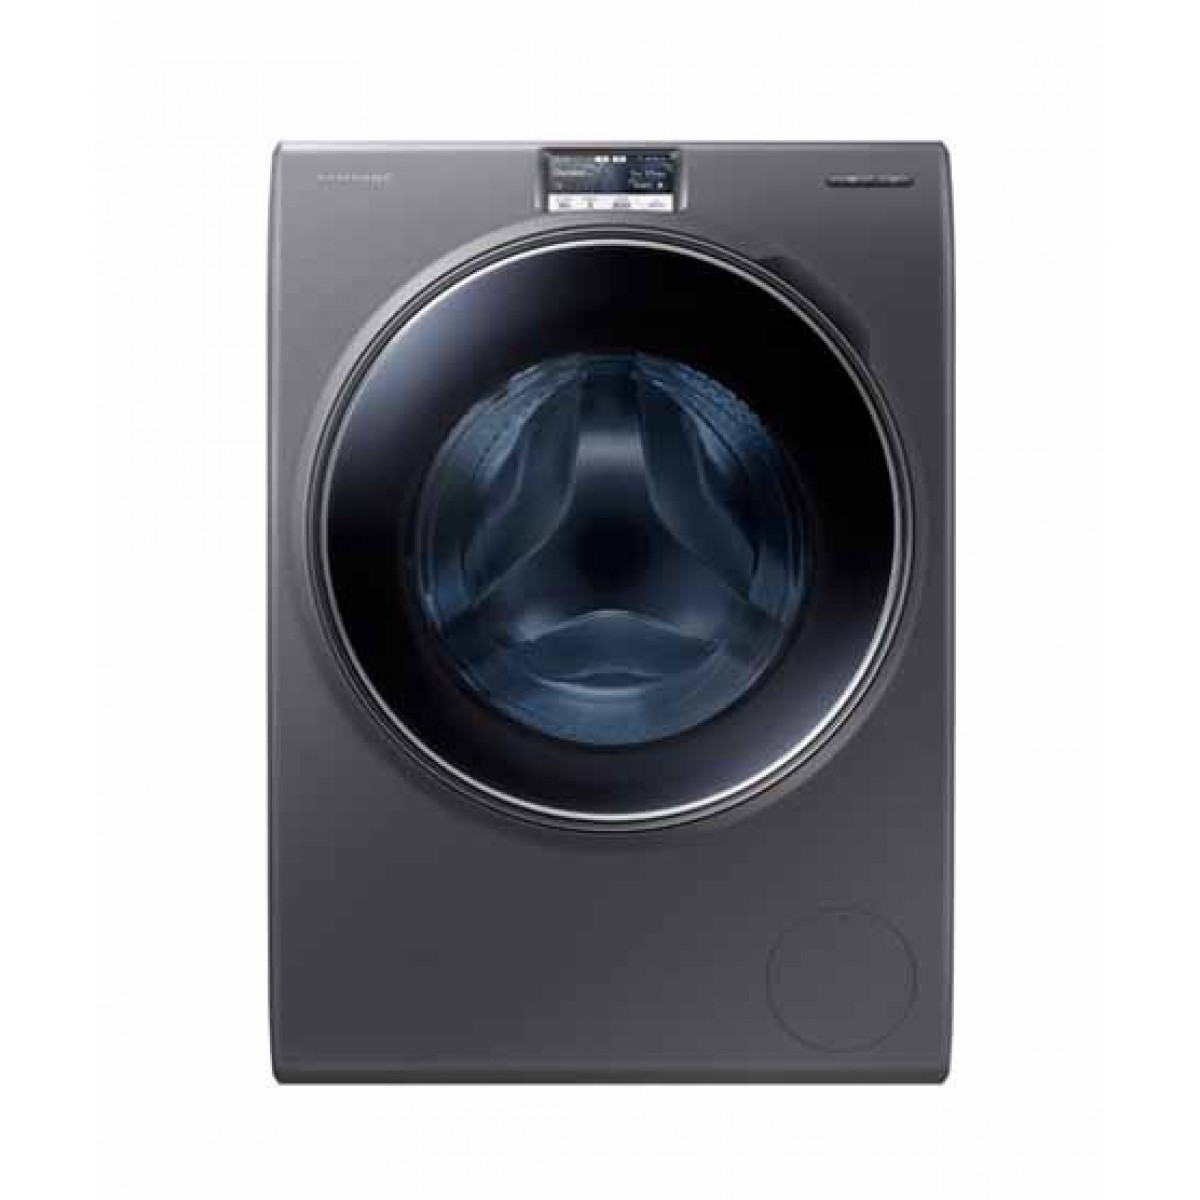 Samsung Fully Automatic Washing Machine 10 Kg Price In Pakistan Buy Samsung Front Load Washing Machine Ww10h9410ex Gu Ishopping Pk